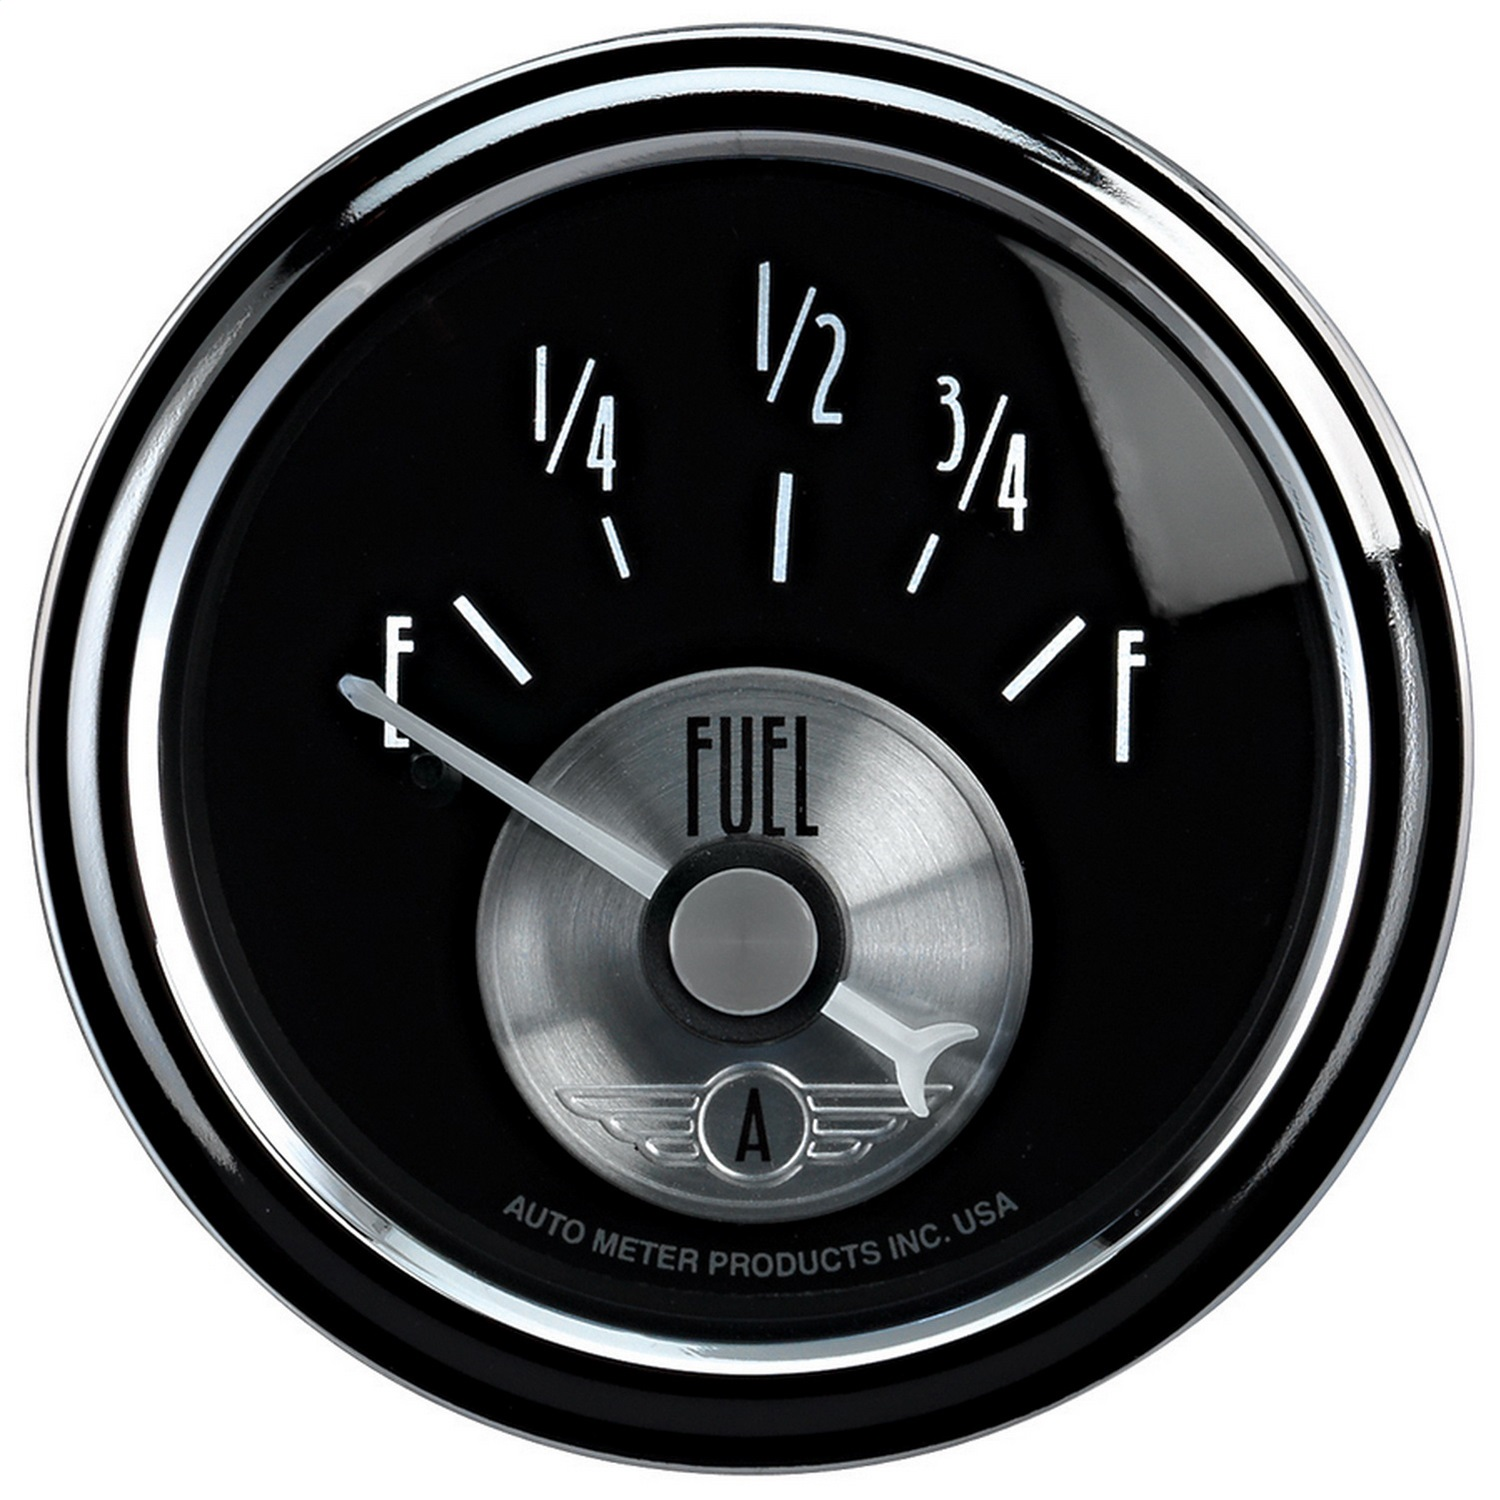 Auto Meter 2014 Prestige Series; Diamond Black; Fuel Level Gauge at Sears.com